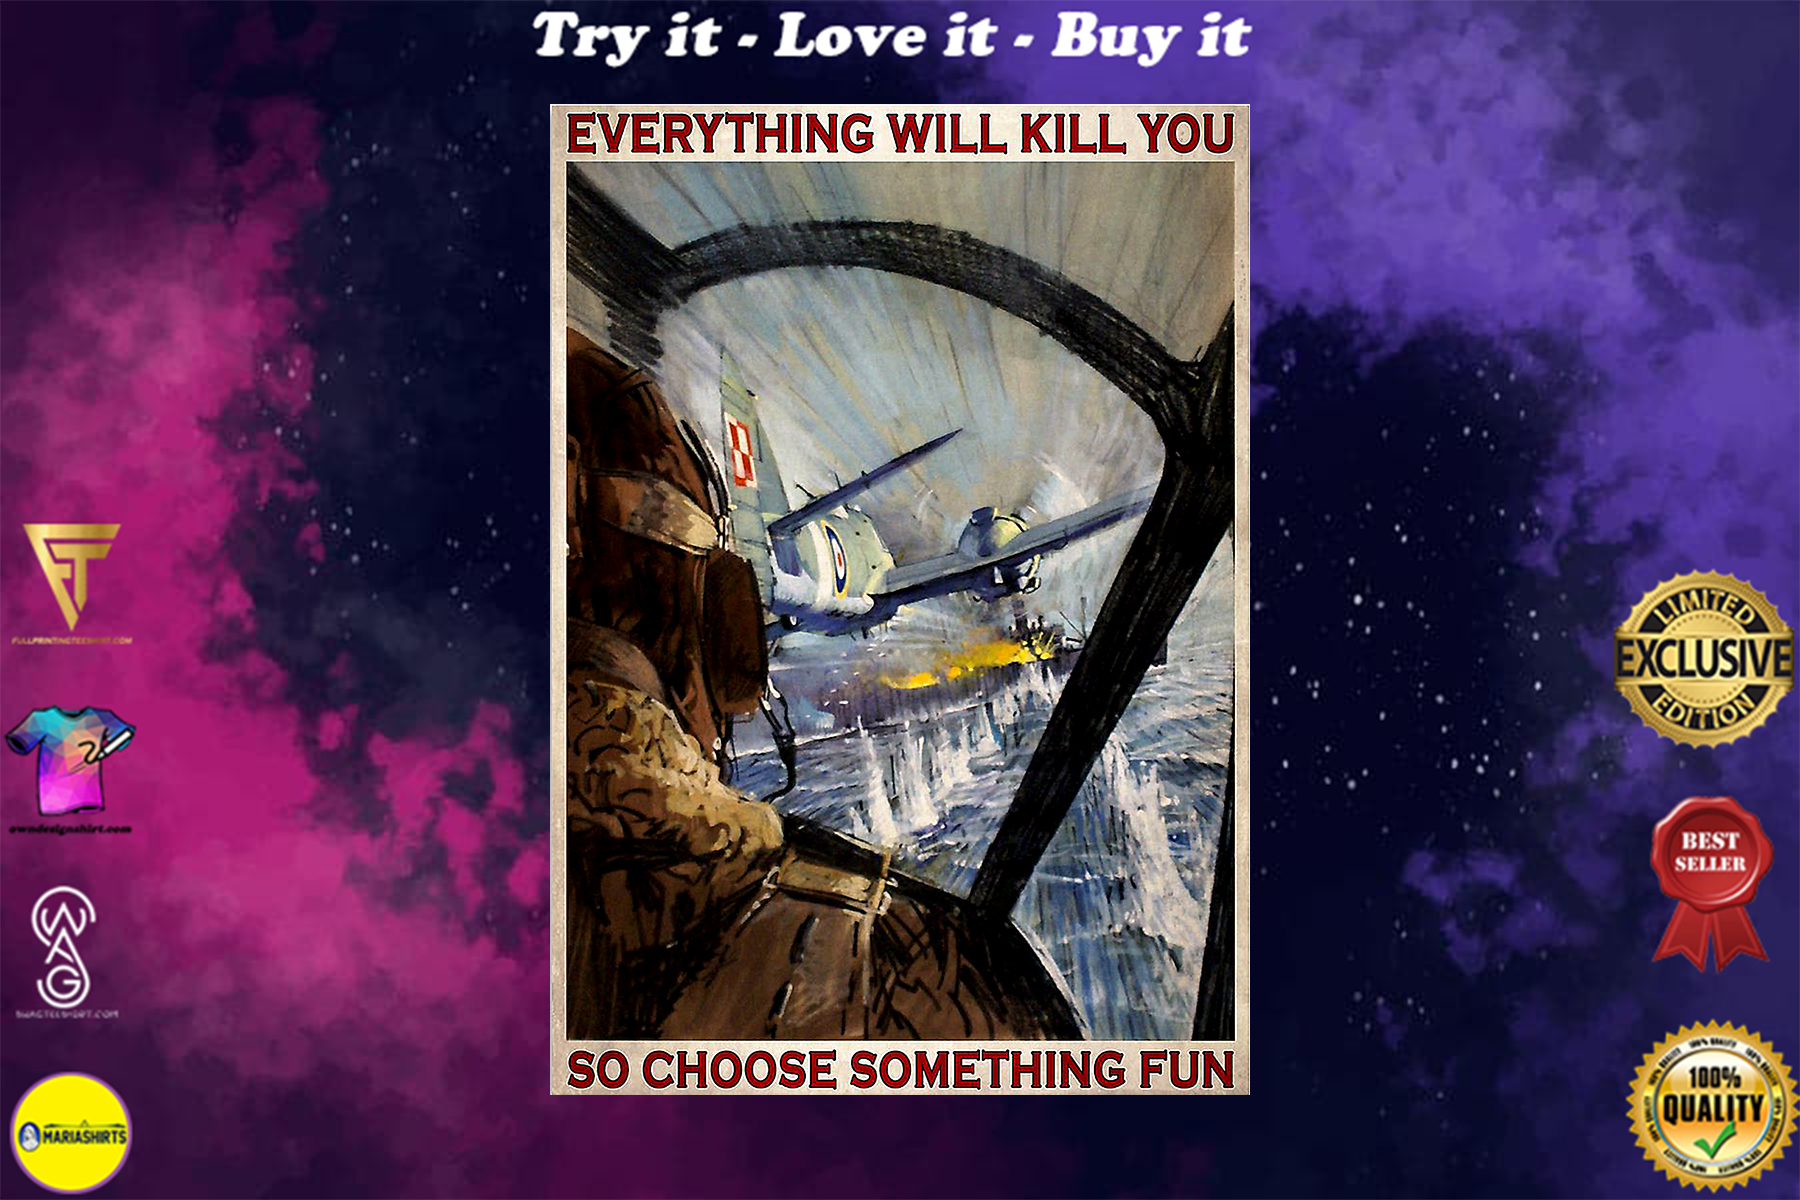 everything will kill you so choose something fun aircraft vintage poster